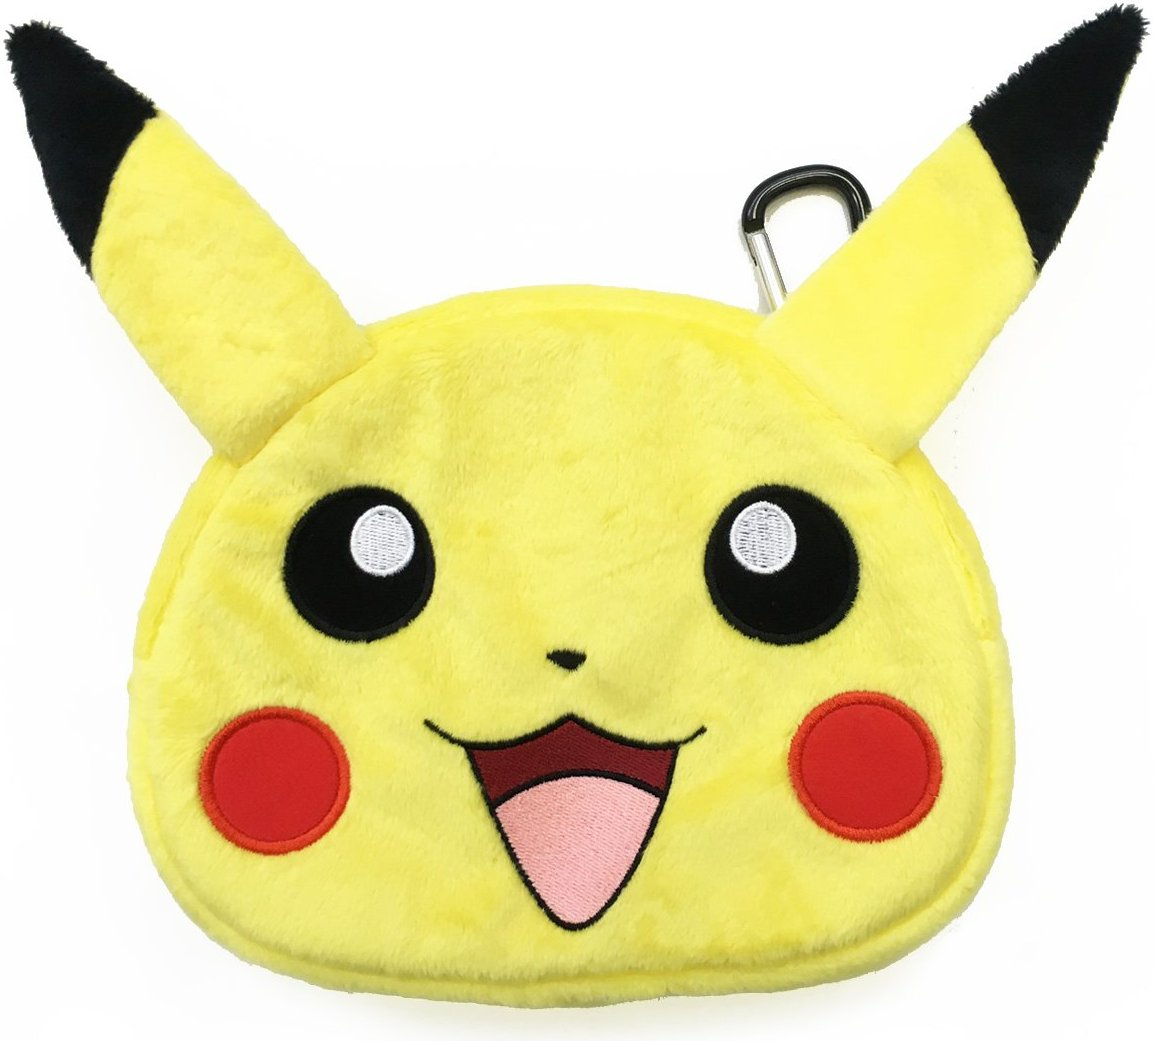 HORI Universal Pikachu Plush Pouch Case for New Nintendo 3DS XL